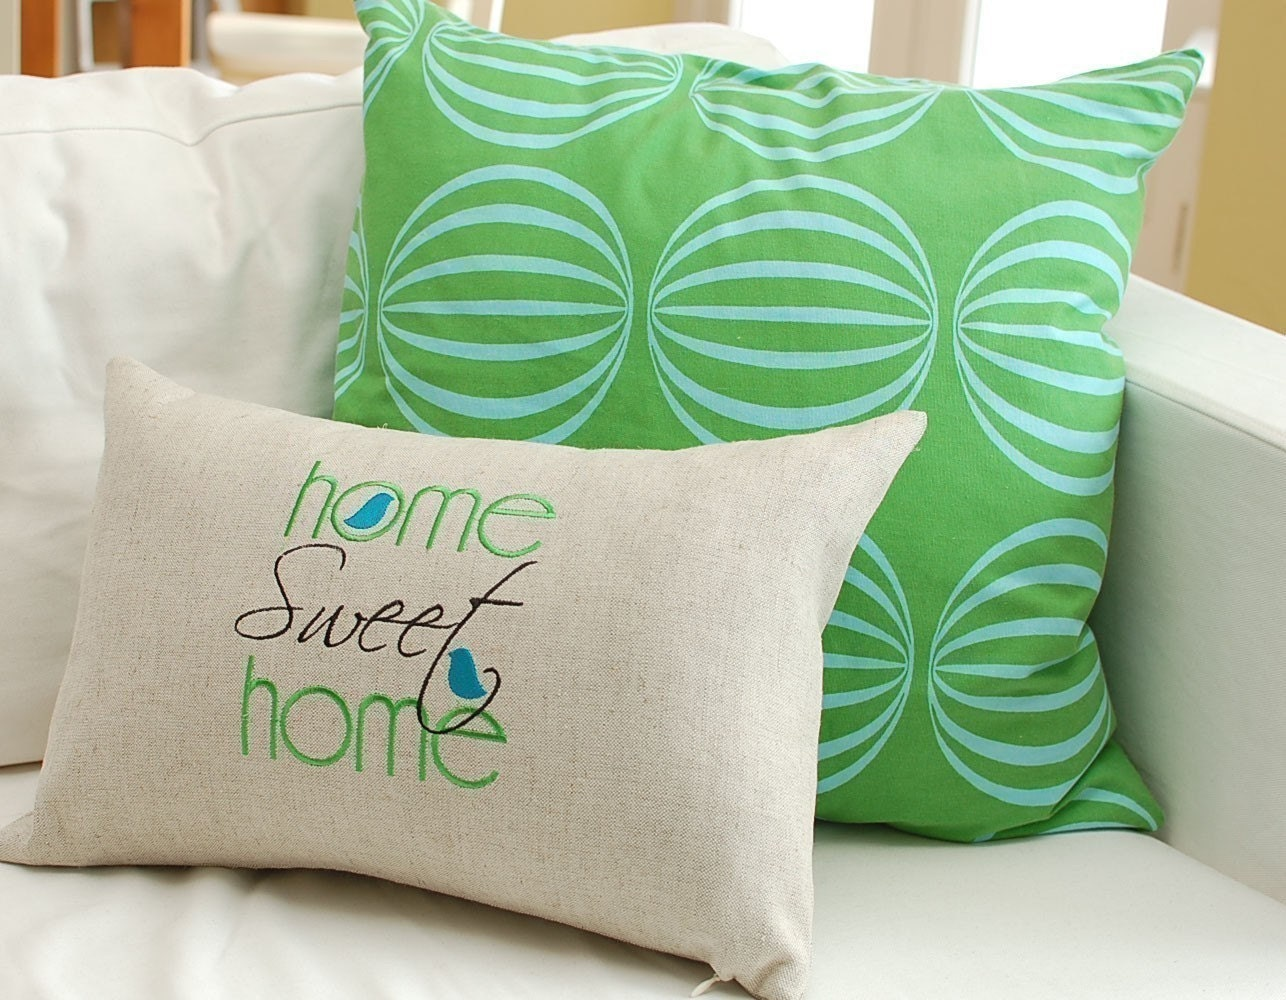 Home Sweet Home Machine Embroidery Design From Meringuedesigns On Etsy Studio